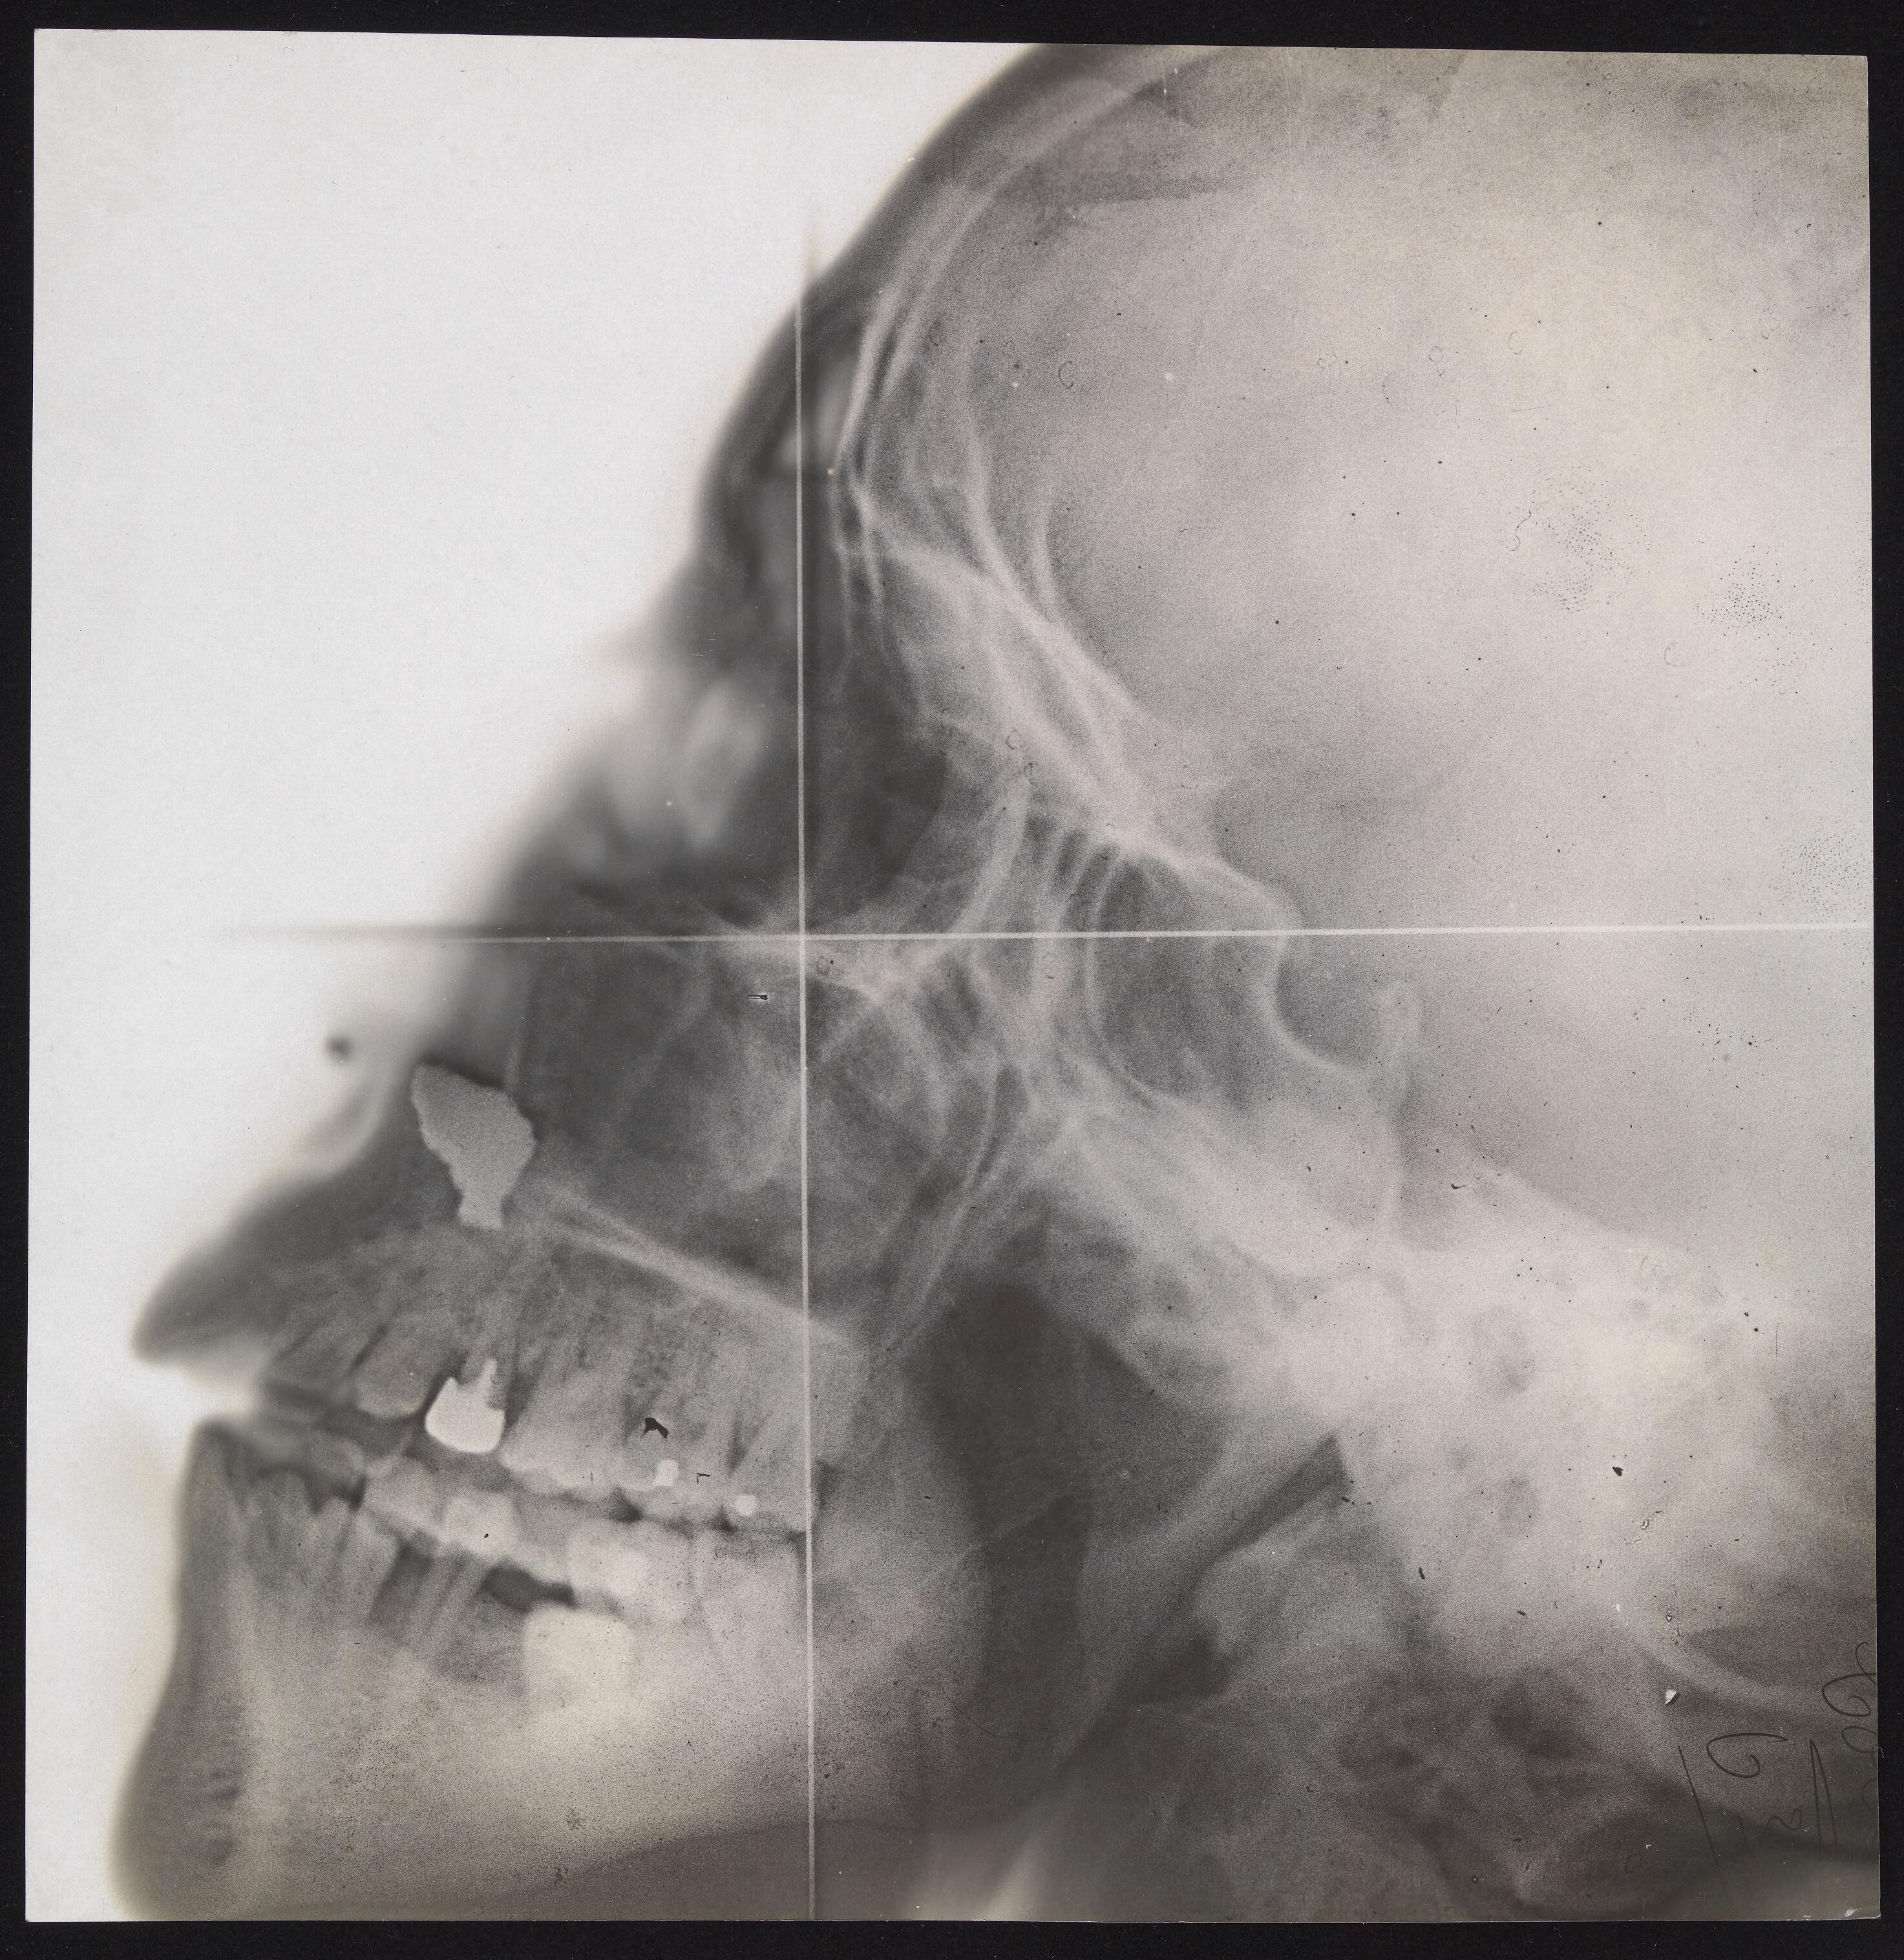 x ray of a skull in profile